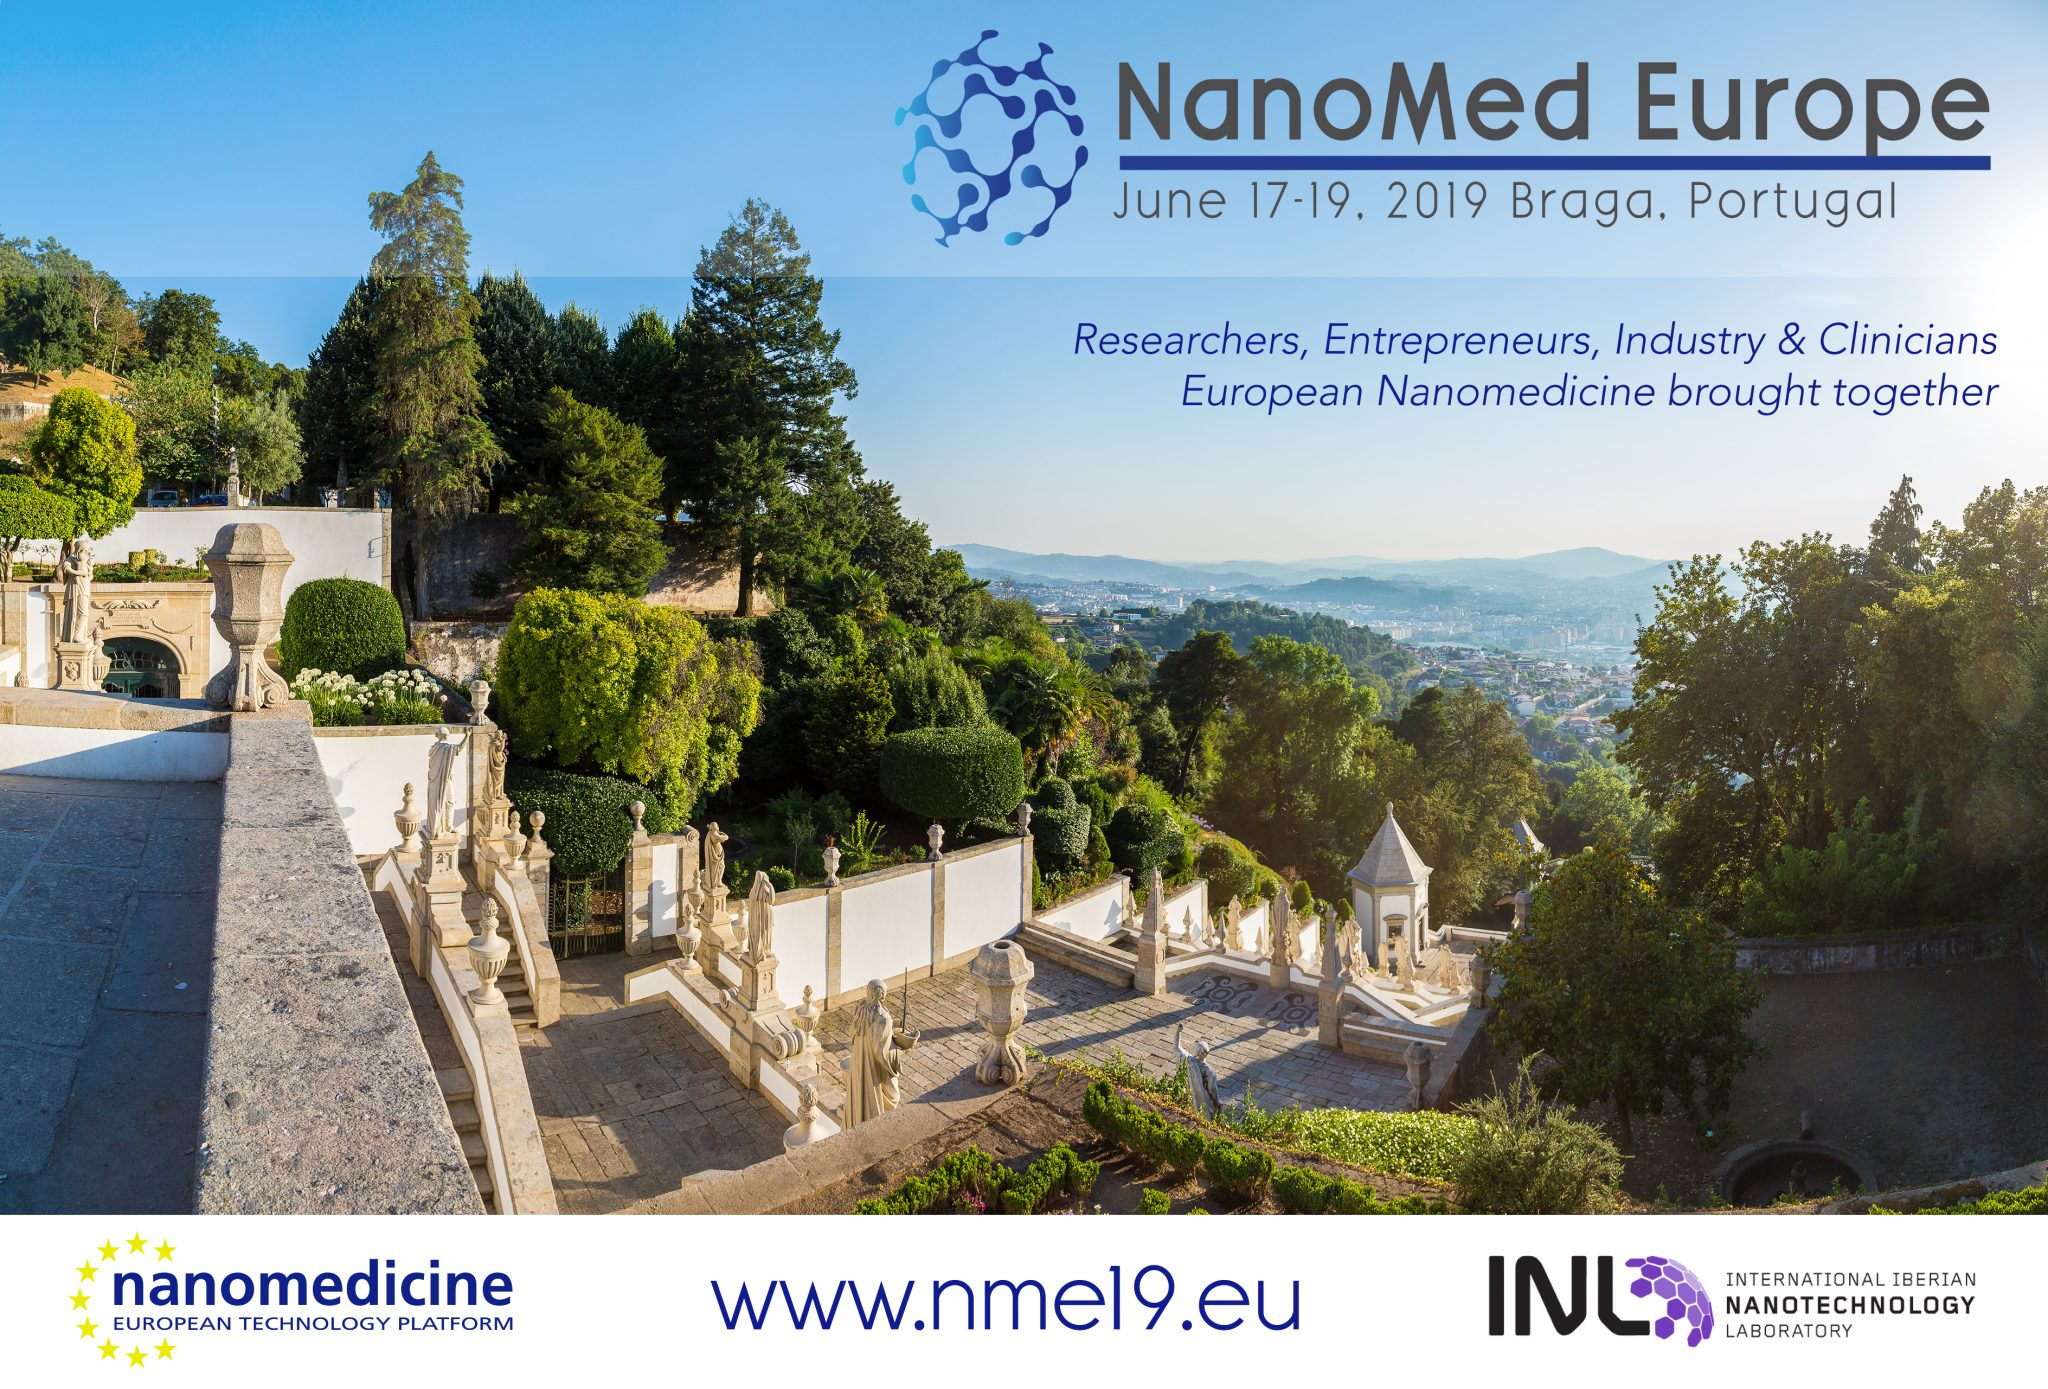 SAVE THE DATE! Nanomed Europe 2019, June 17-19 , Braga, Spain